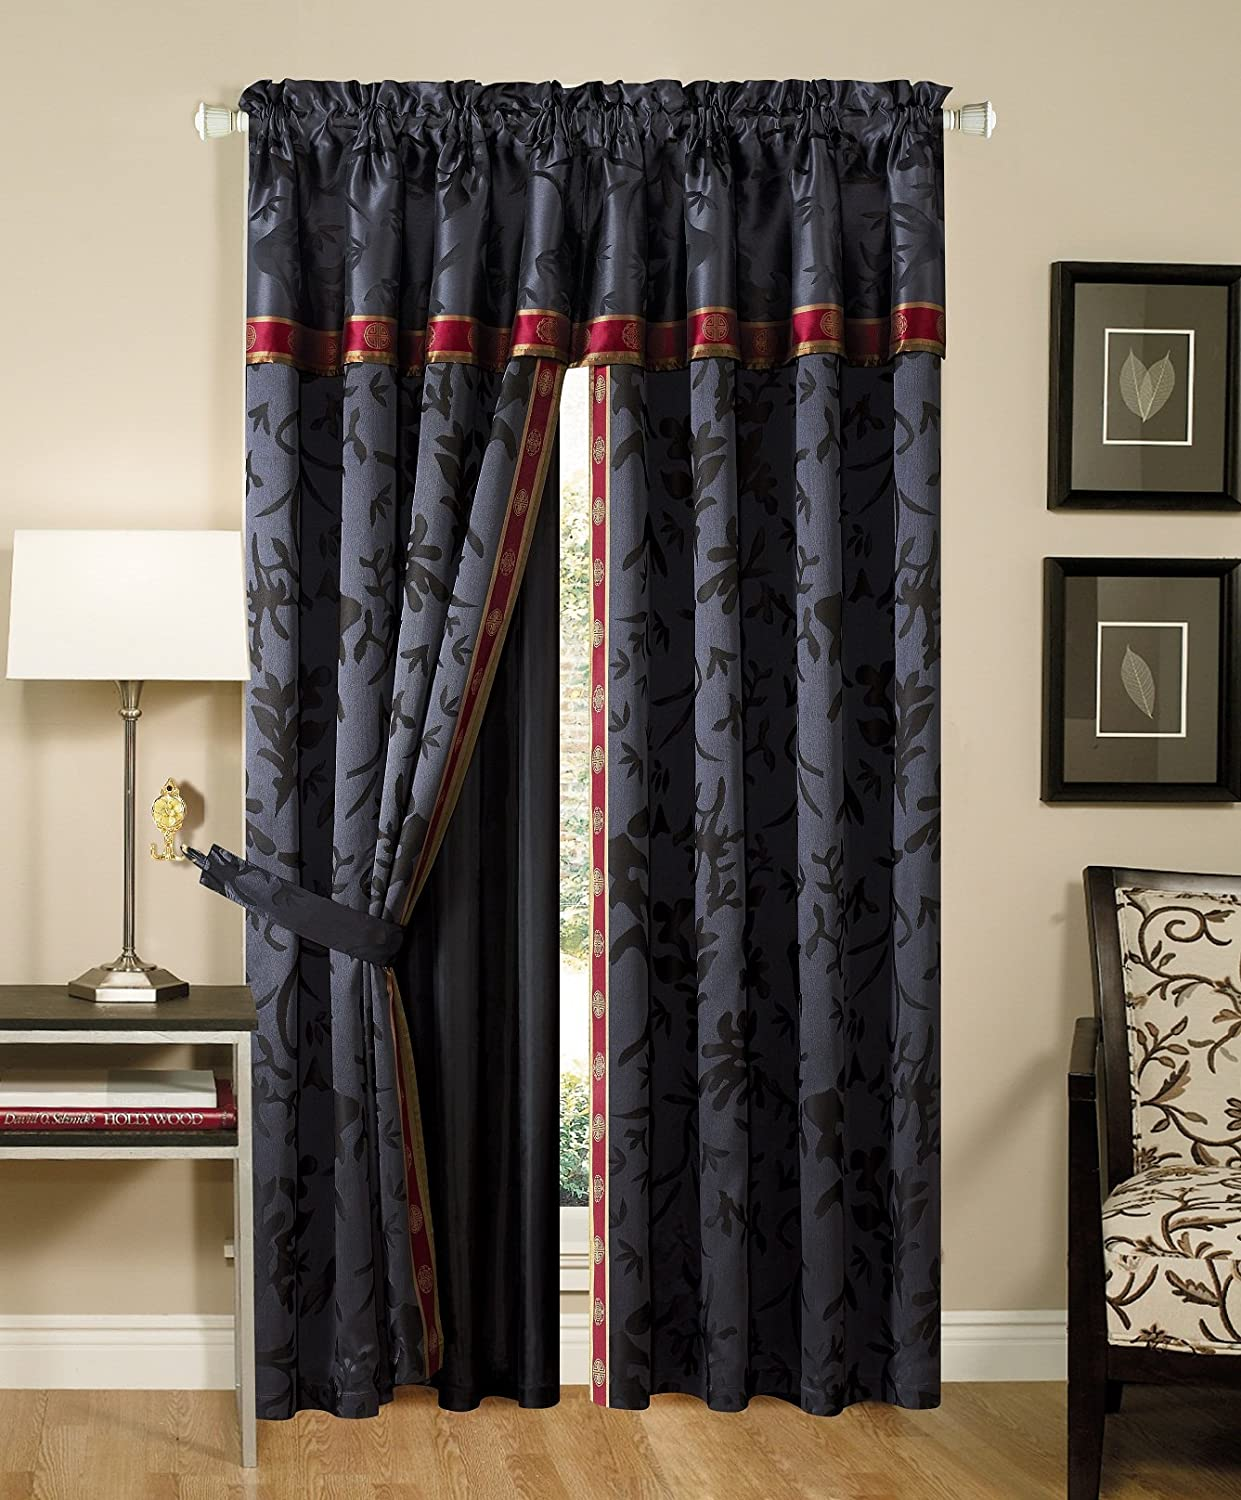 curtains p asian clouds set full bamboo picture of s inch moon panel drapes window